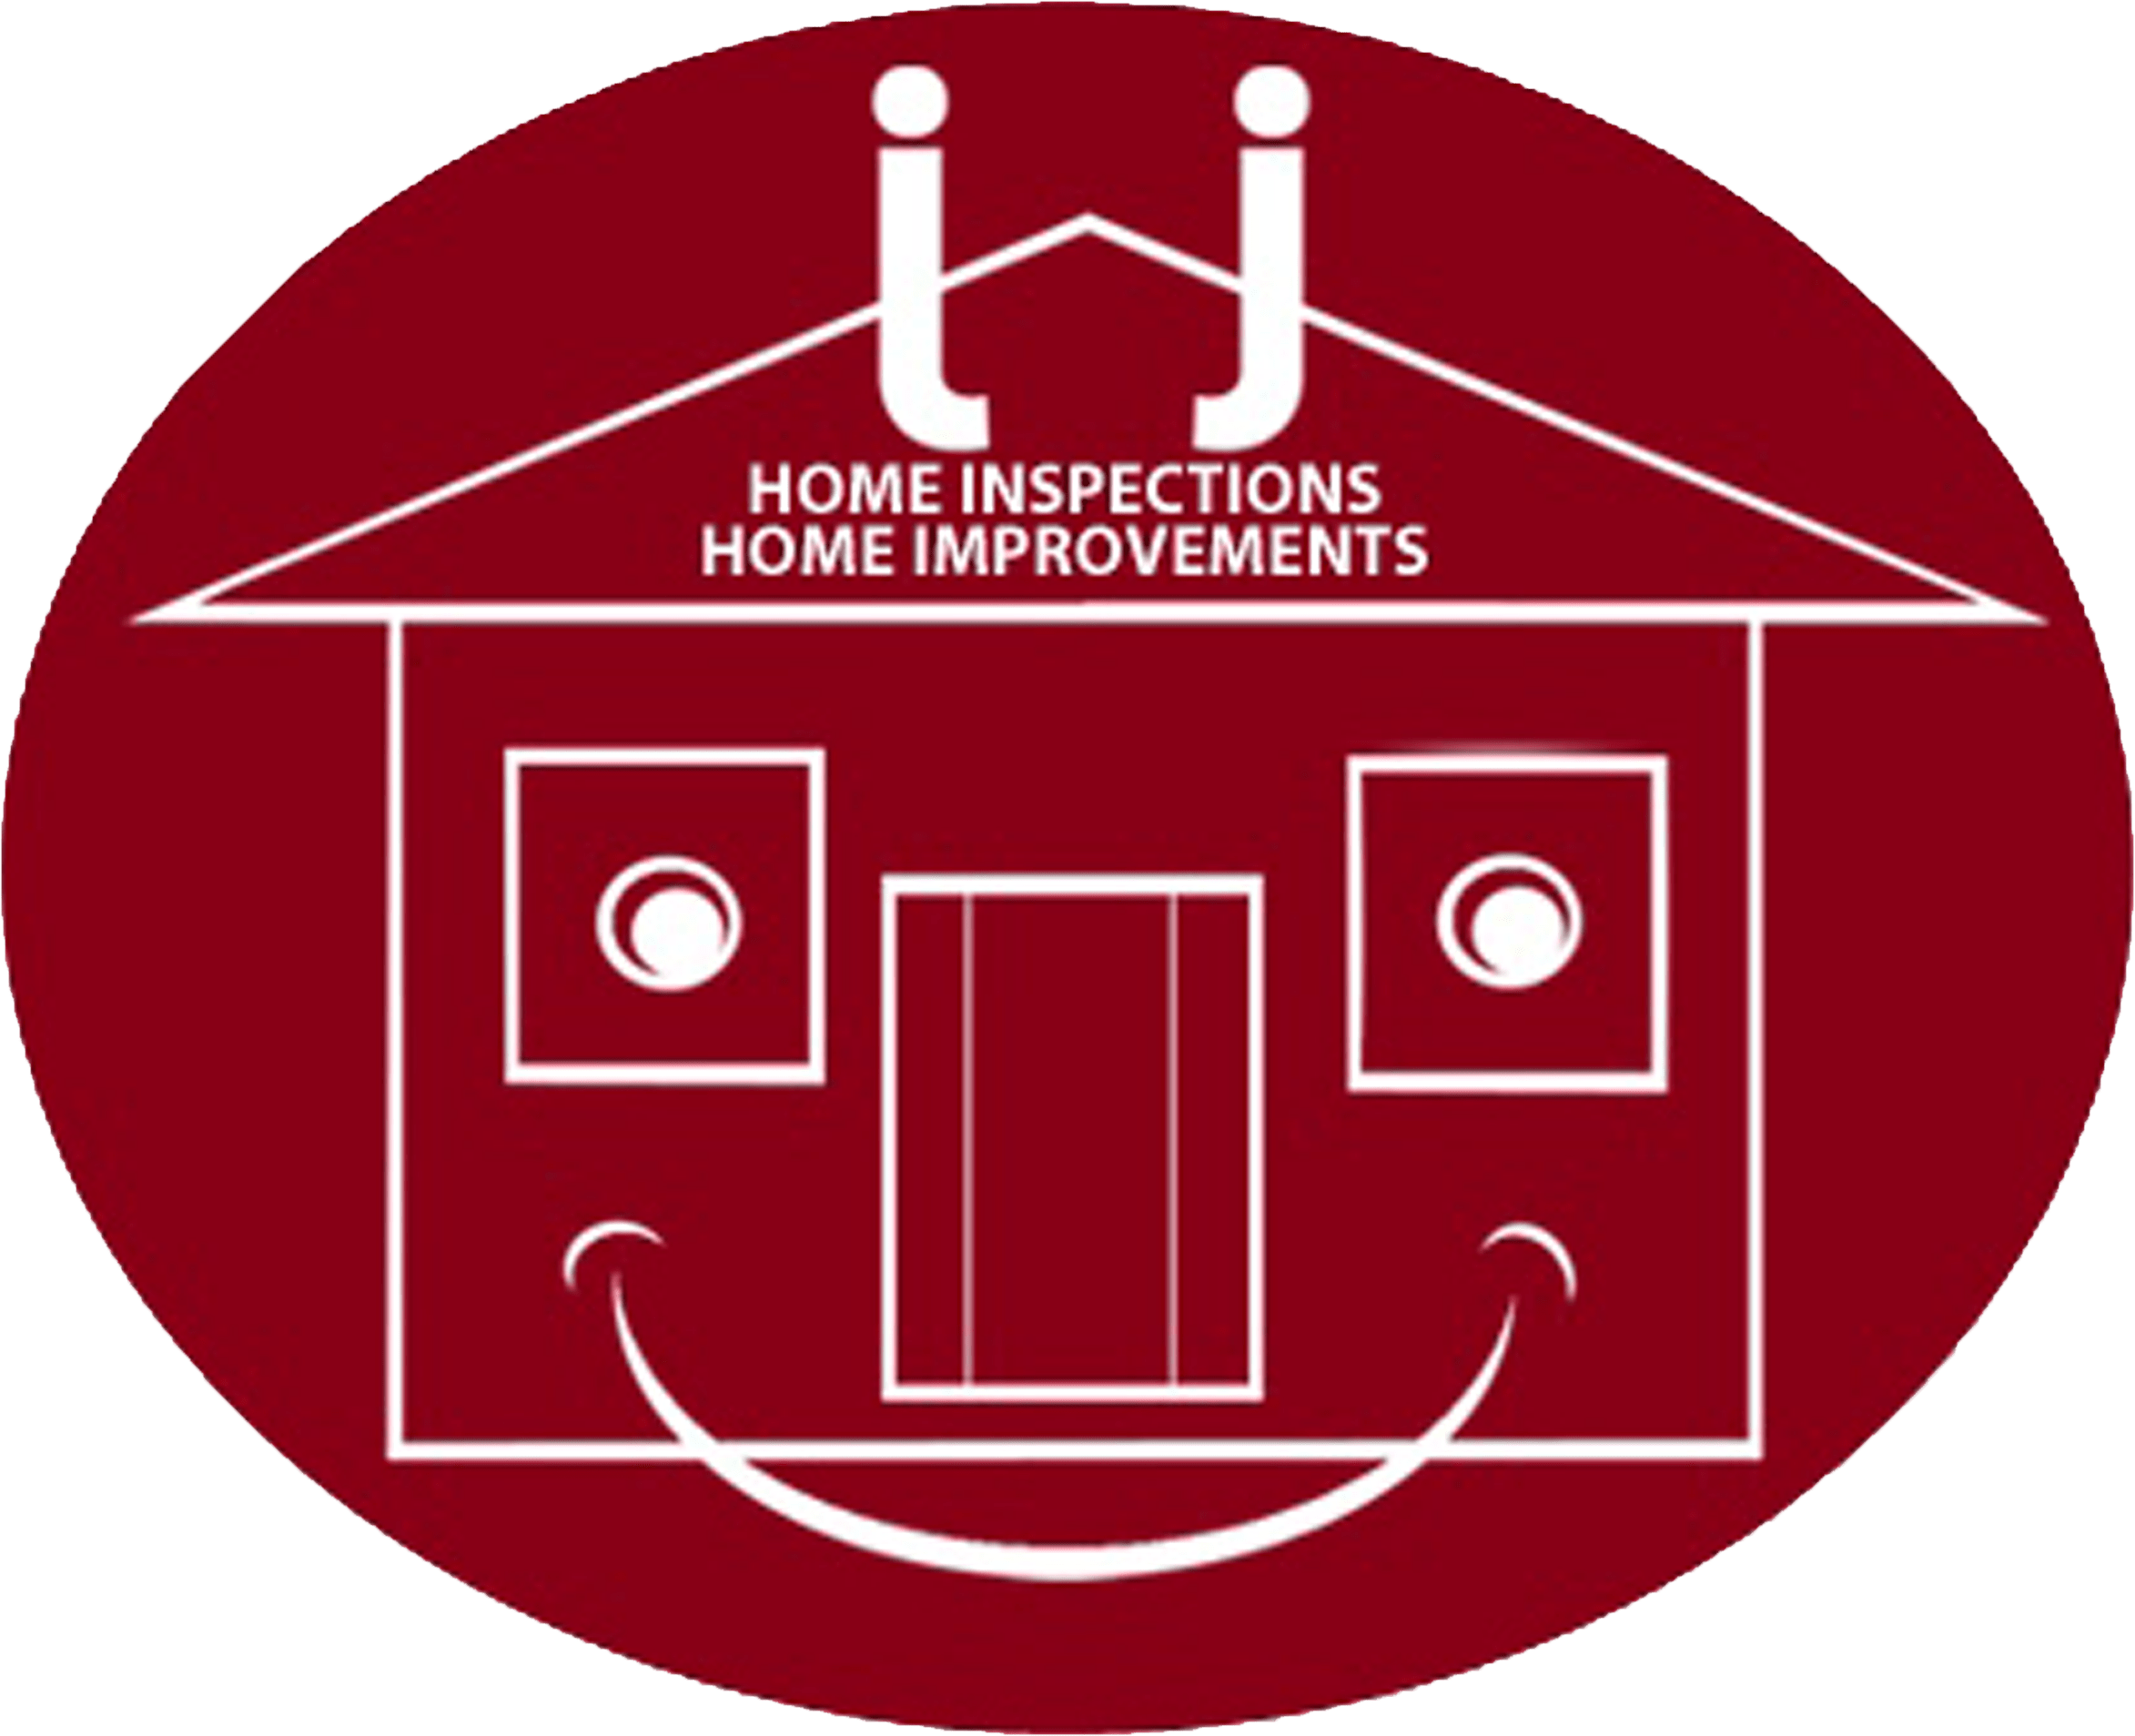 JJ home inspections